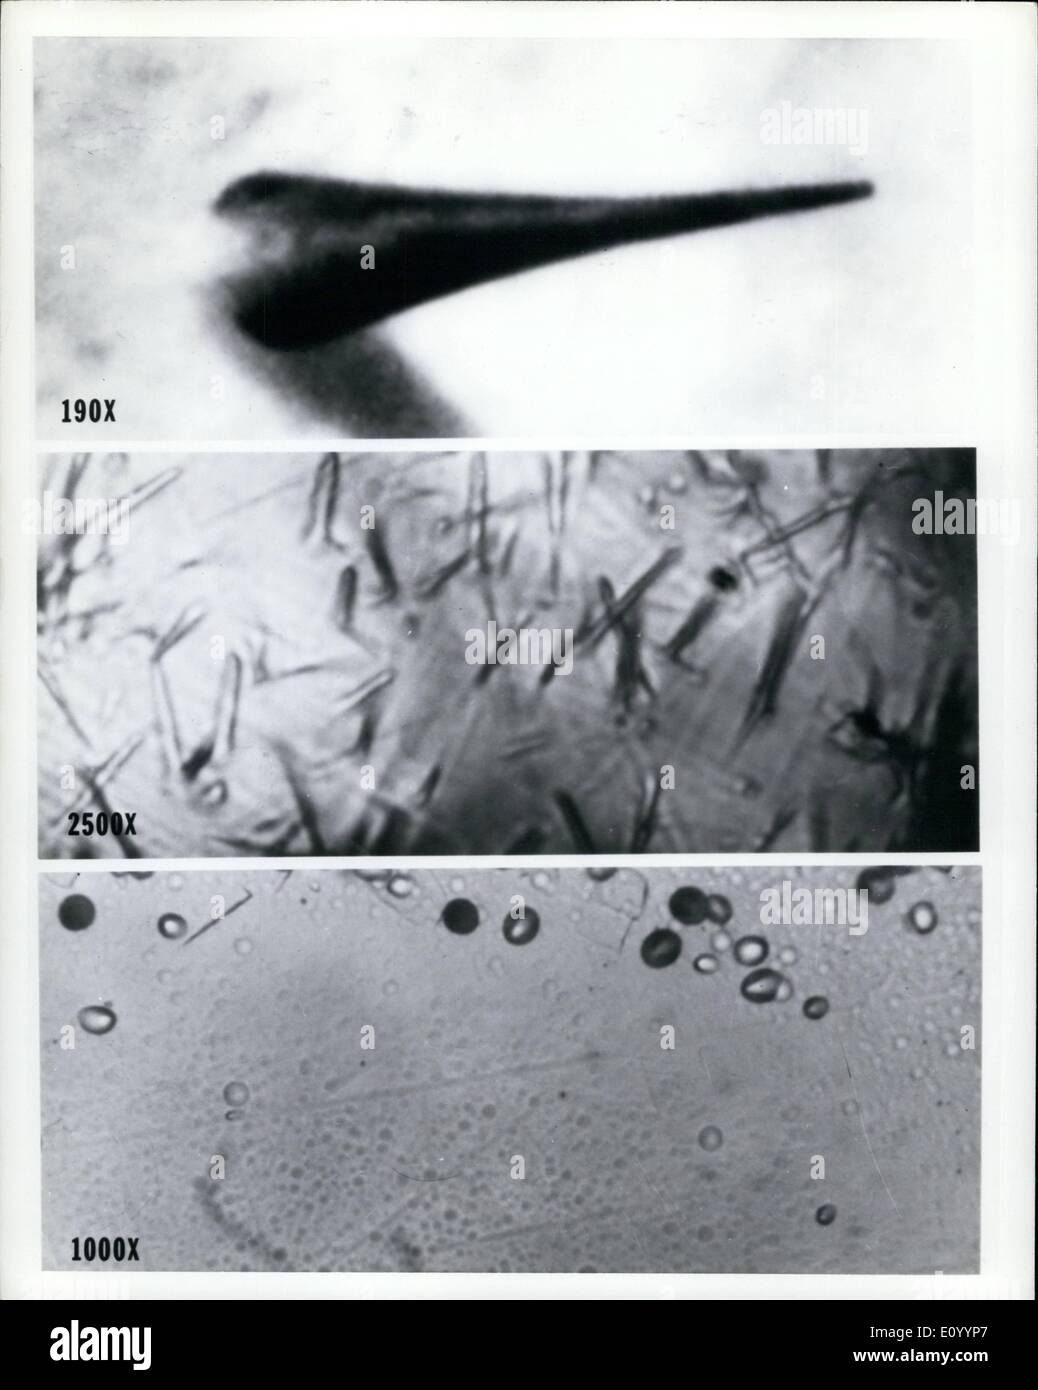 Dec. 12, 1971 - Telltale Tracks. Cosmic rays - Cosmic rays - mysterious particles that bombard the solar system from all directions in space - left these tracks in a piece of plastic (top), a mineral sample (middle), and a fragment of glass (bottom). A special array of these detector materials will be carried to the moon and back next March by the Apollo 16 astronauts. The tracks recorded by the detector array are expected to provide new information about the age, composition, and origin of cosmic rays, the most powerful of which are generated by unknown sources in space - Stock Image